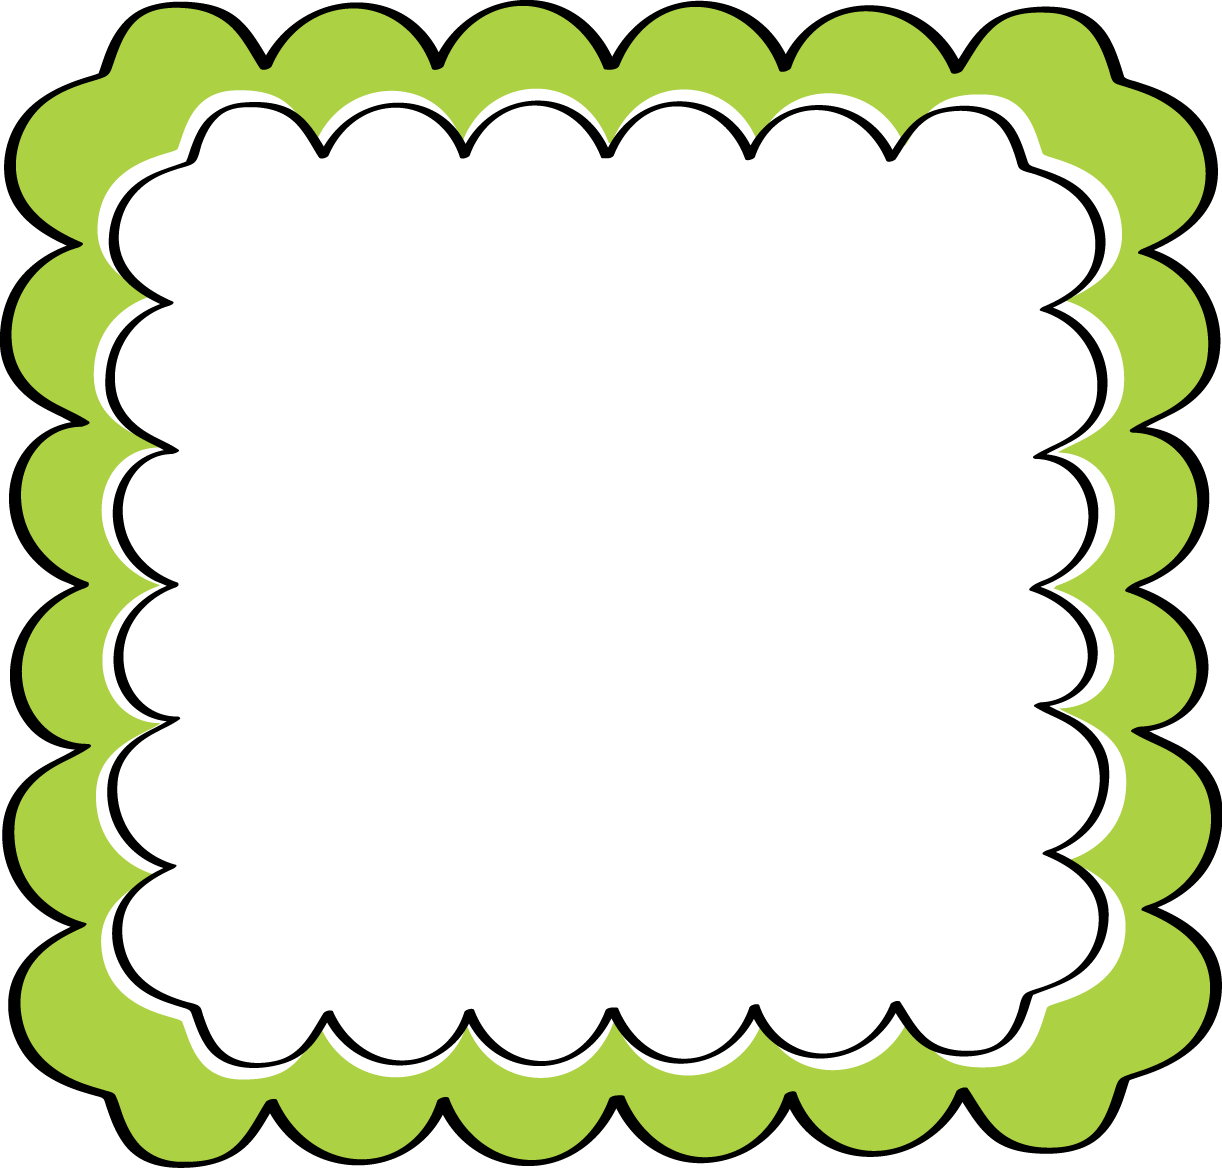 hight resolution of school theme border clipart green scalloped frame free clip art frames